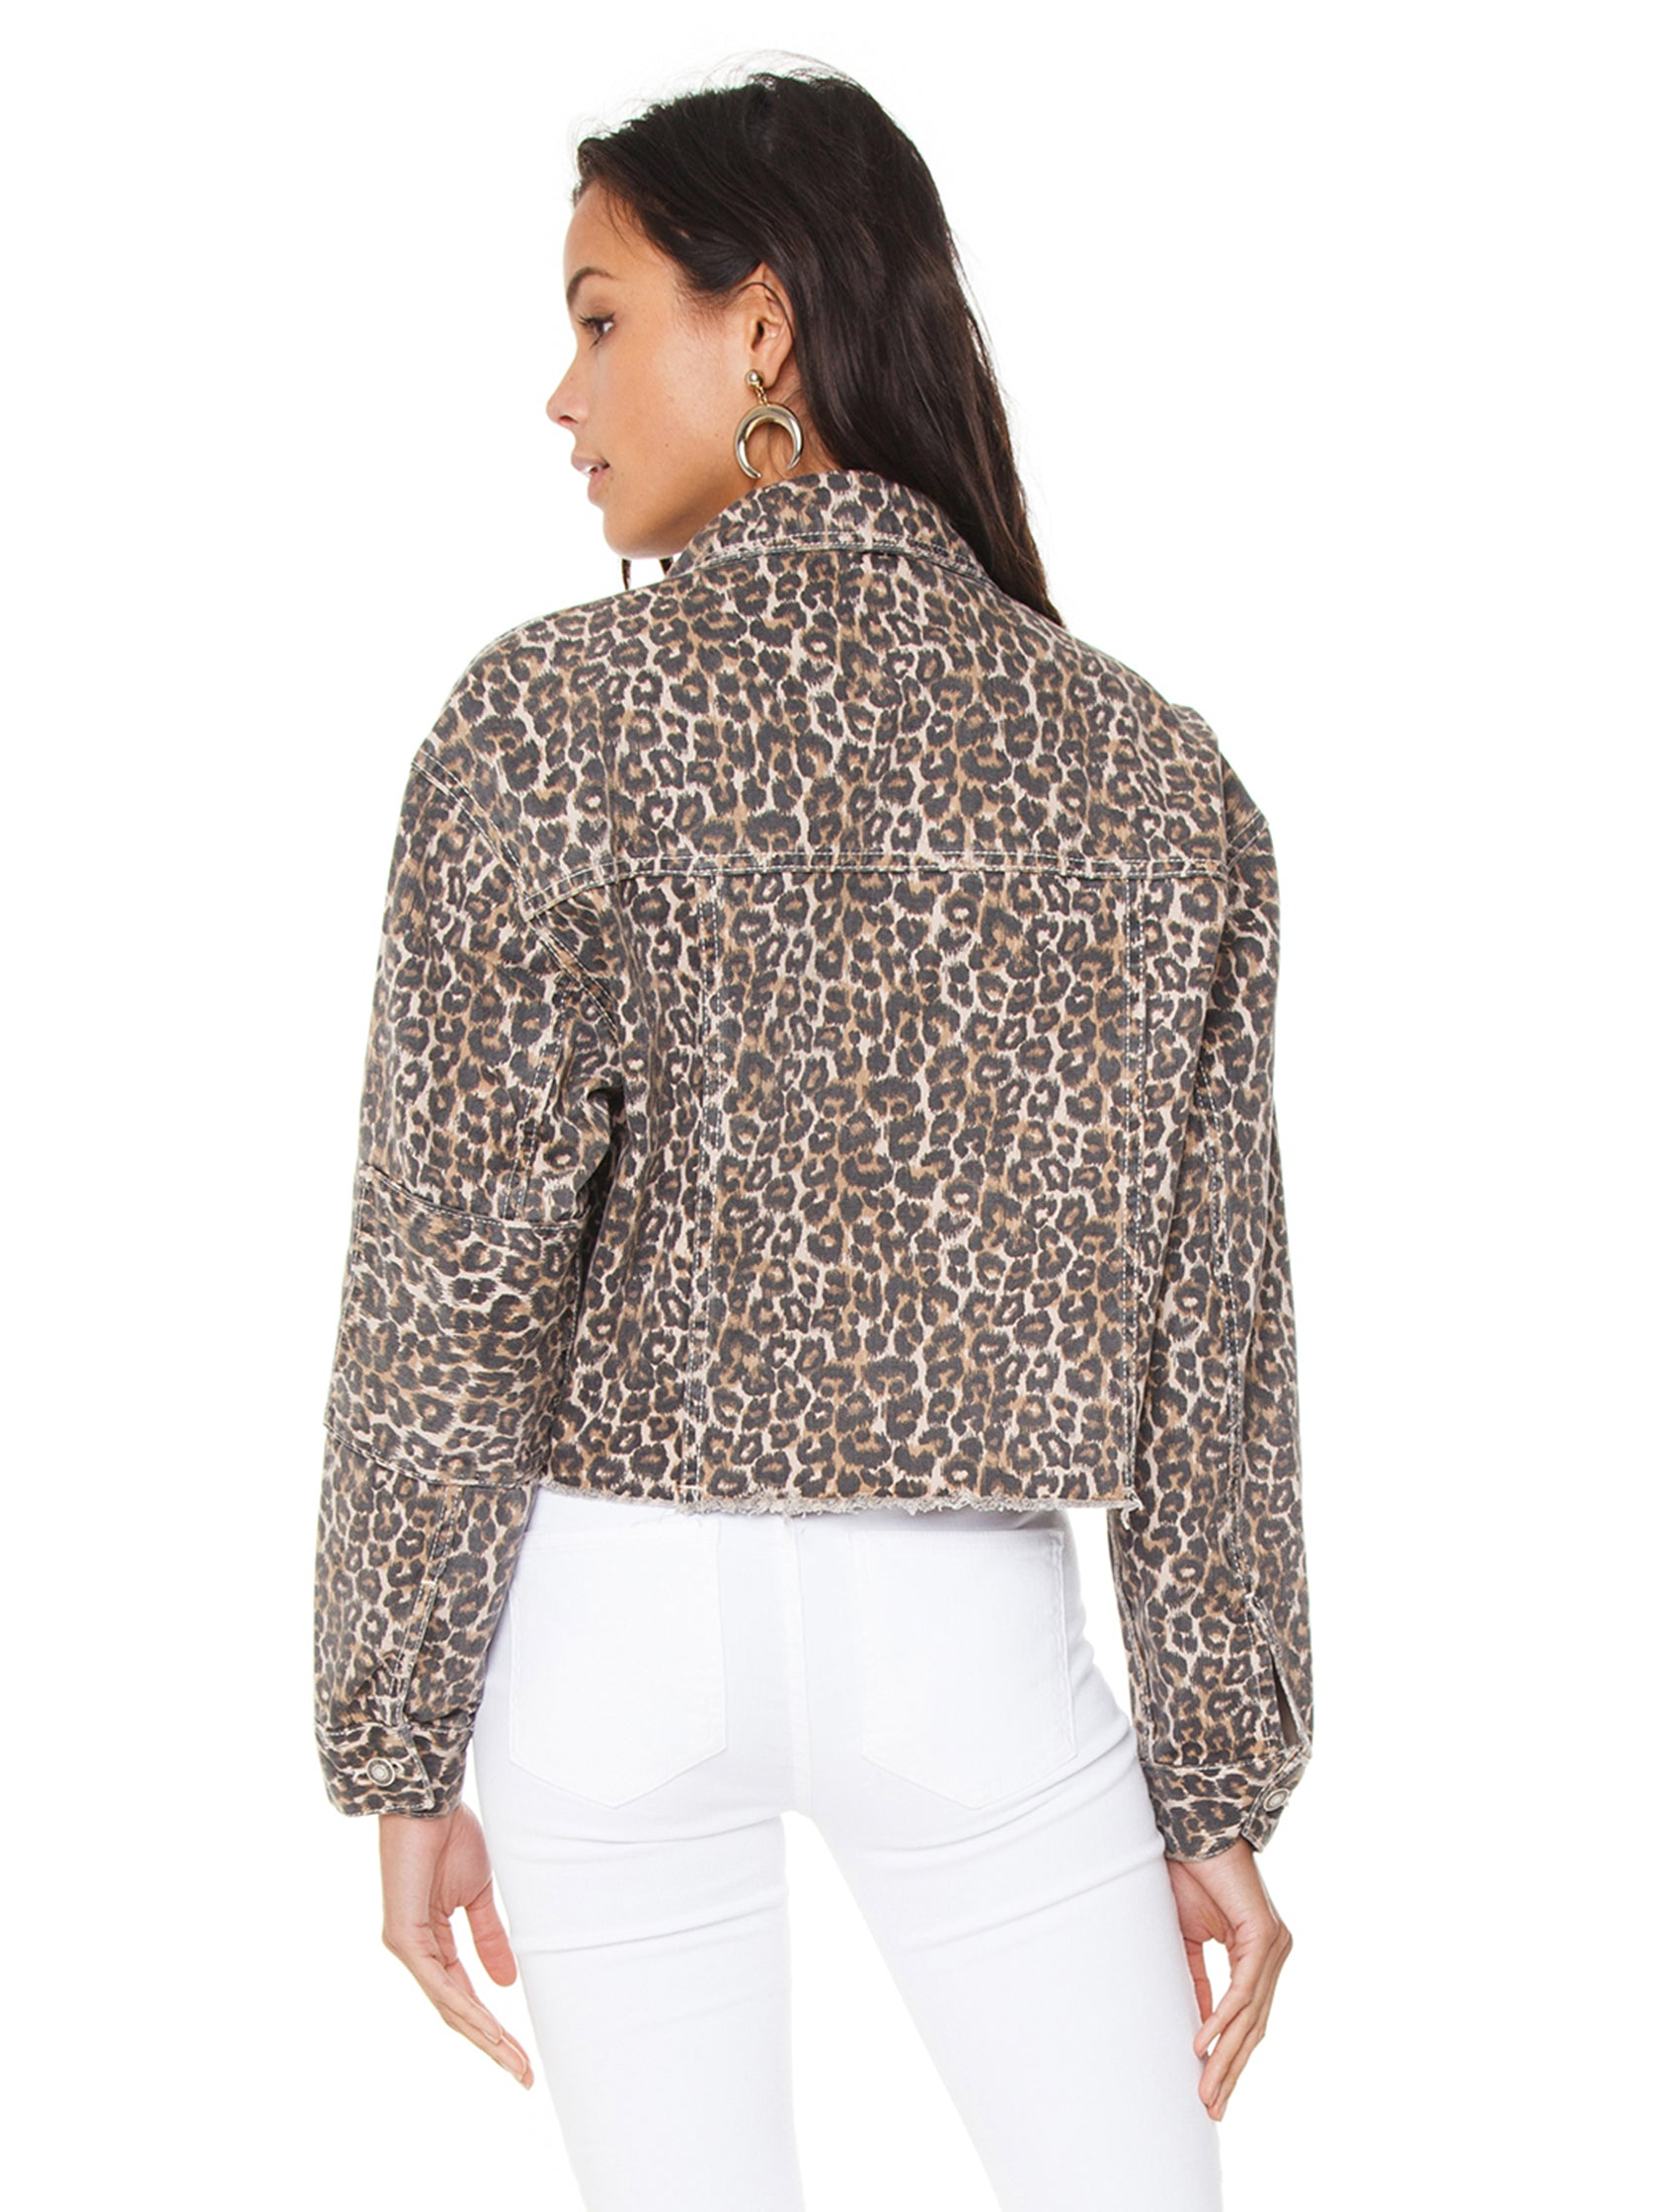 Women outfit in a jacket rental from Free People called Cheetah Printed Denim Jacket